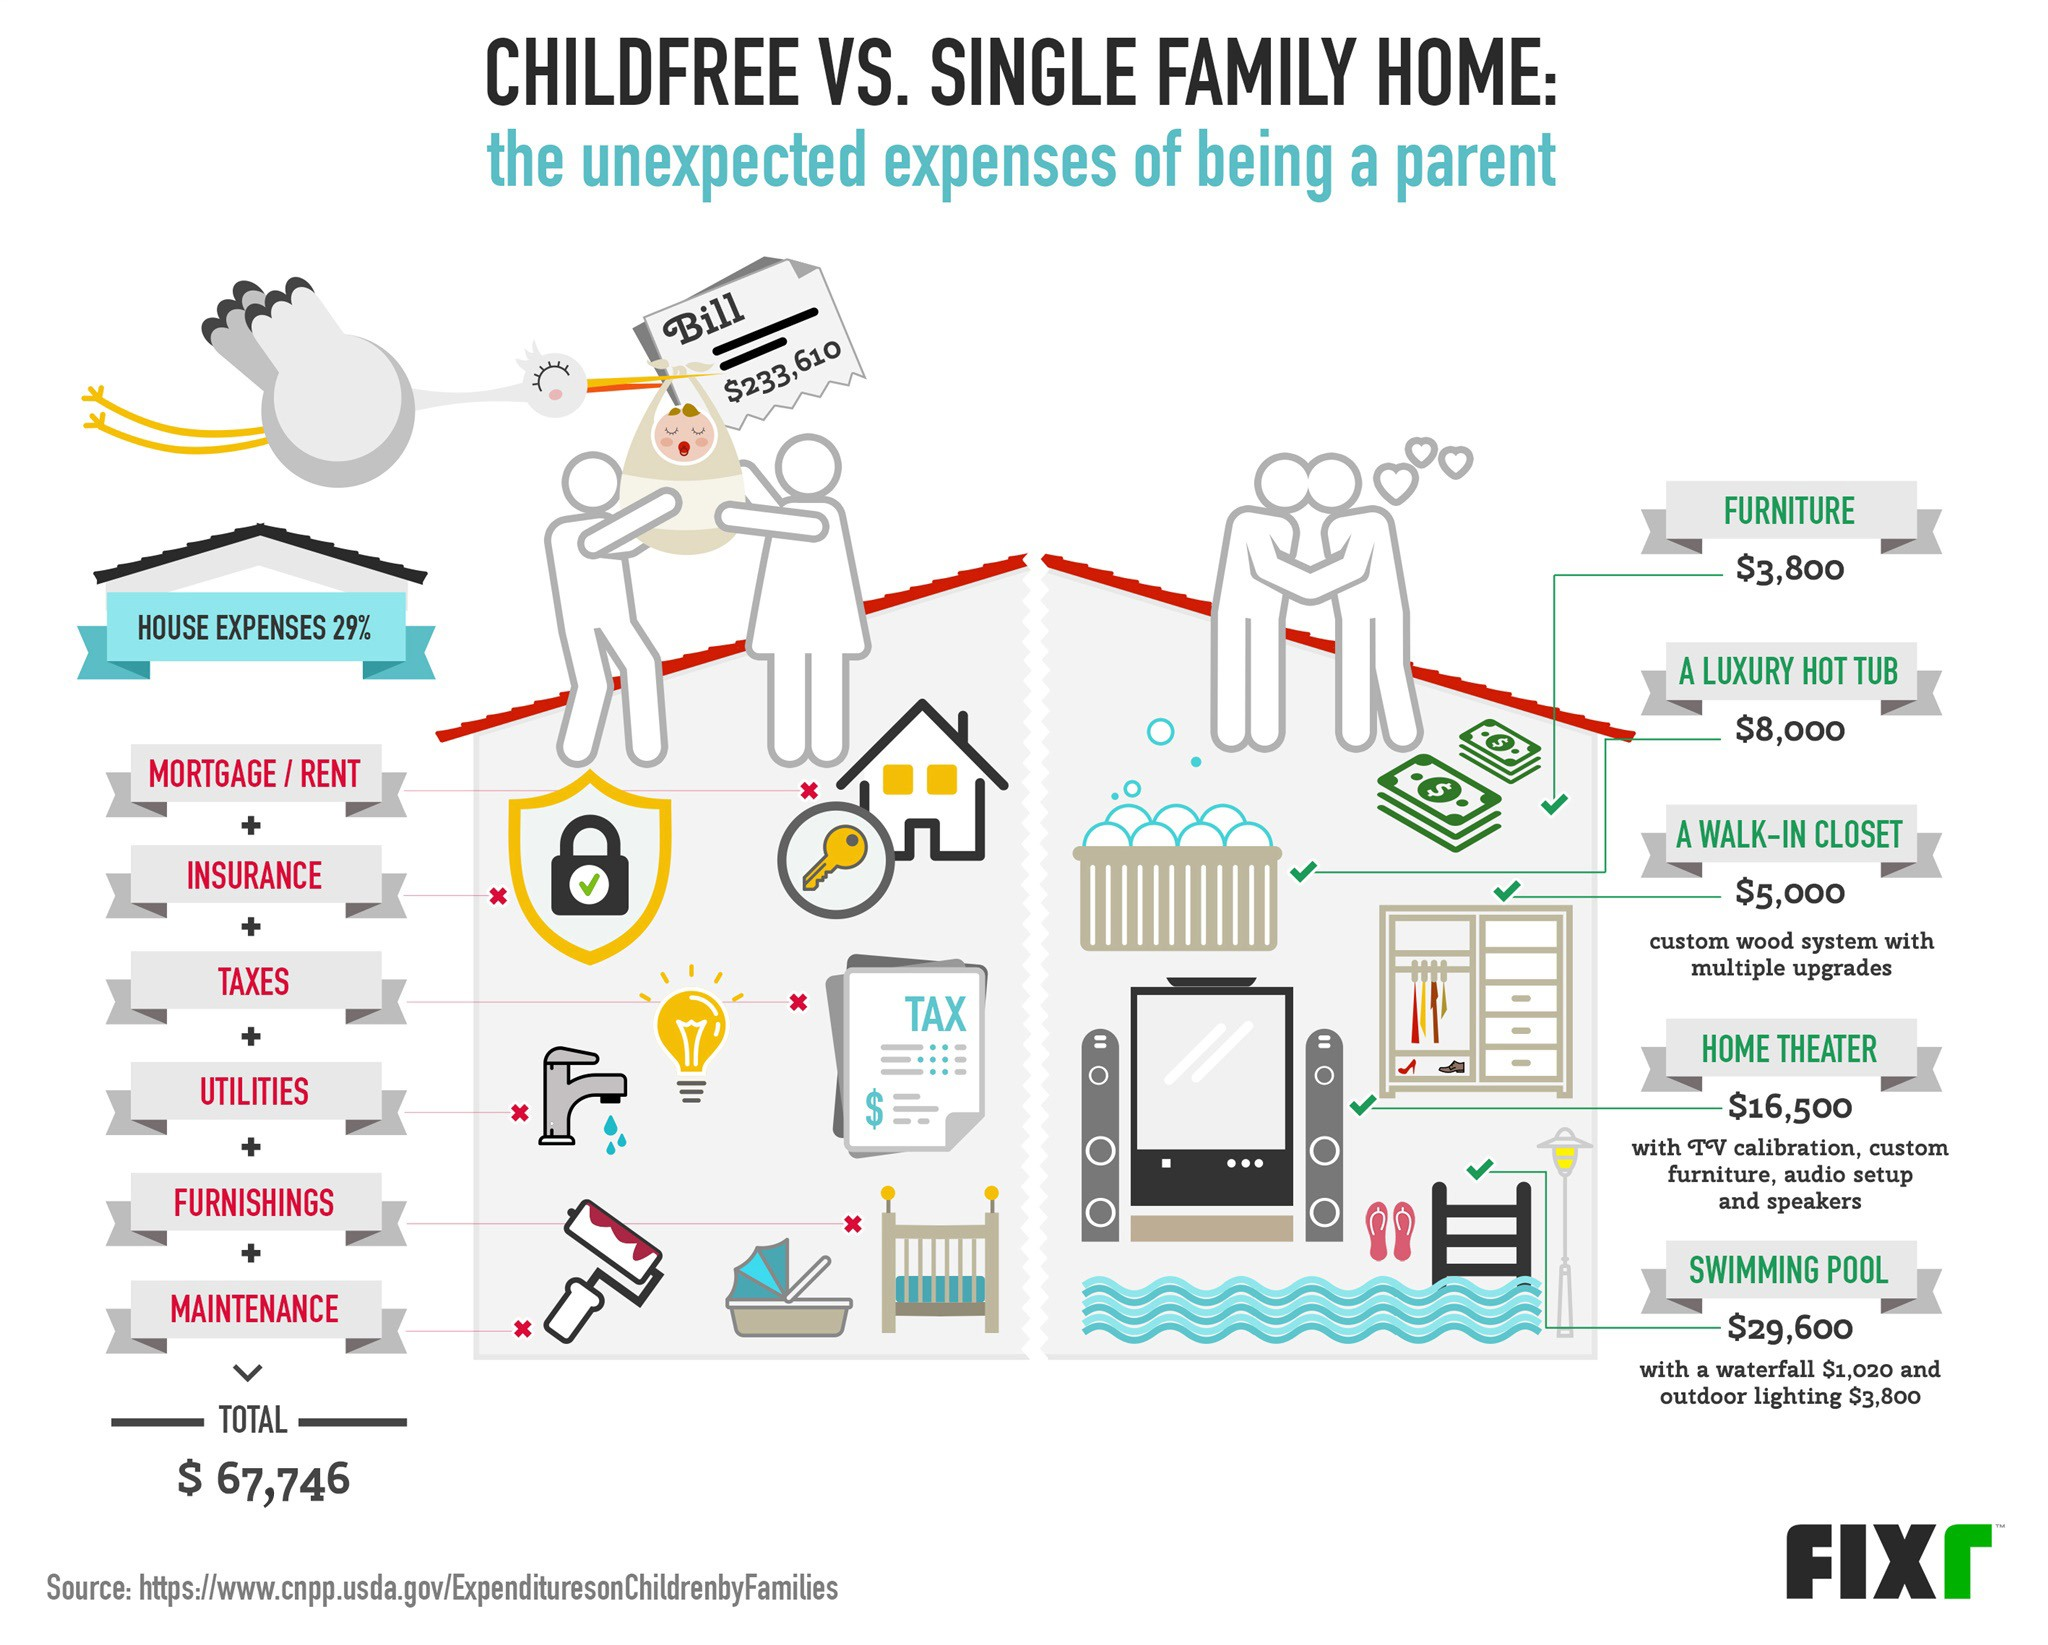 Childfree vs. Single Family Home: the Unexpected Expenses of Being a Parent